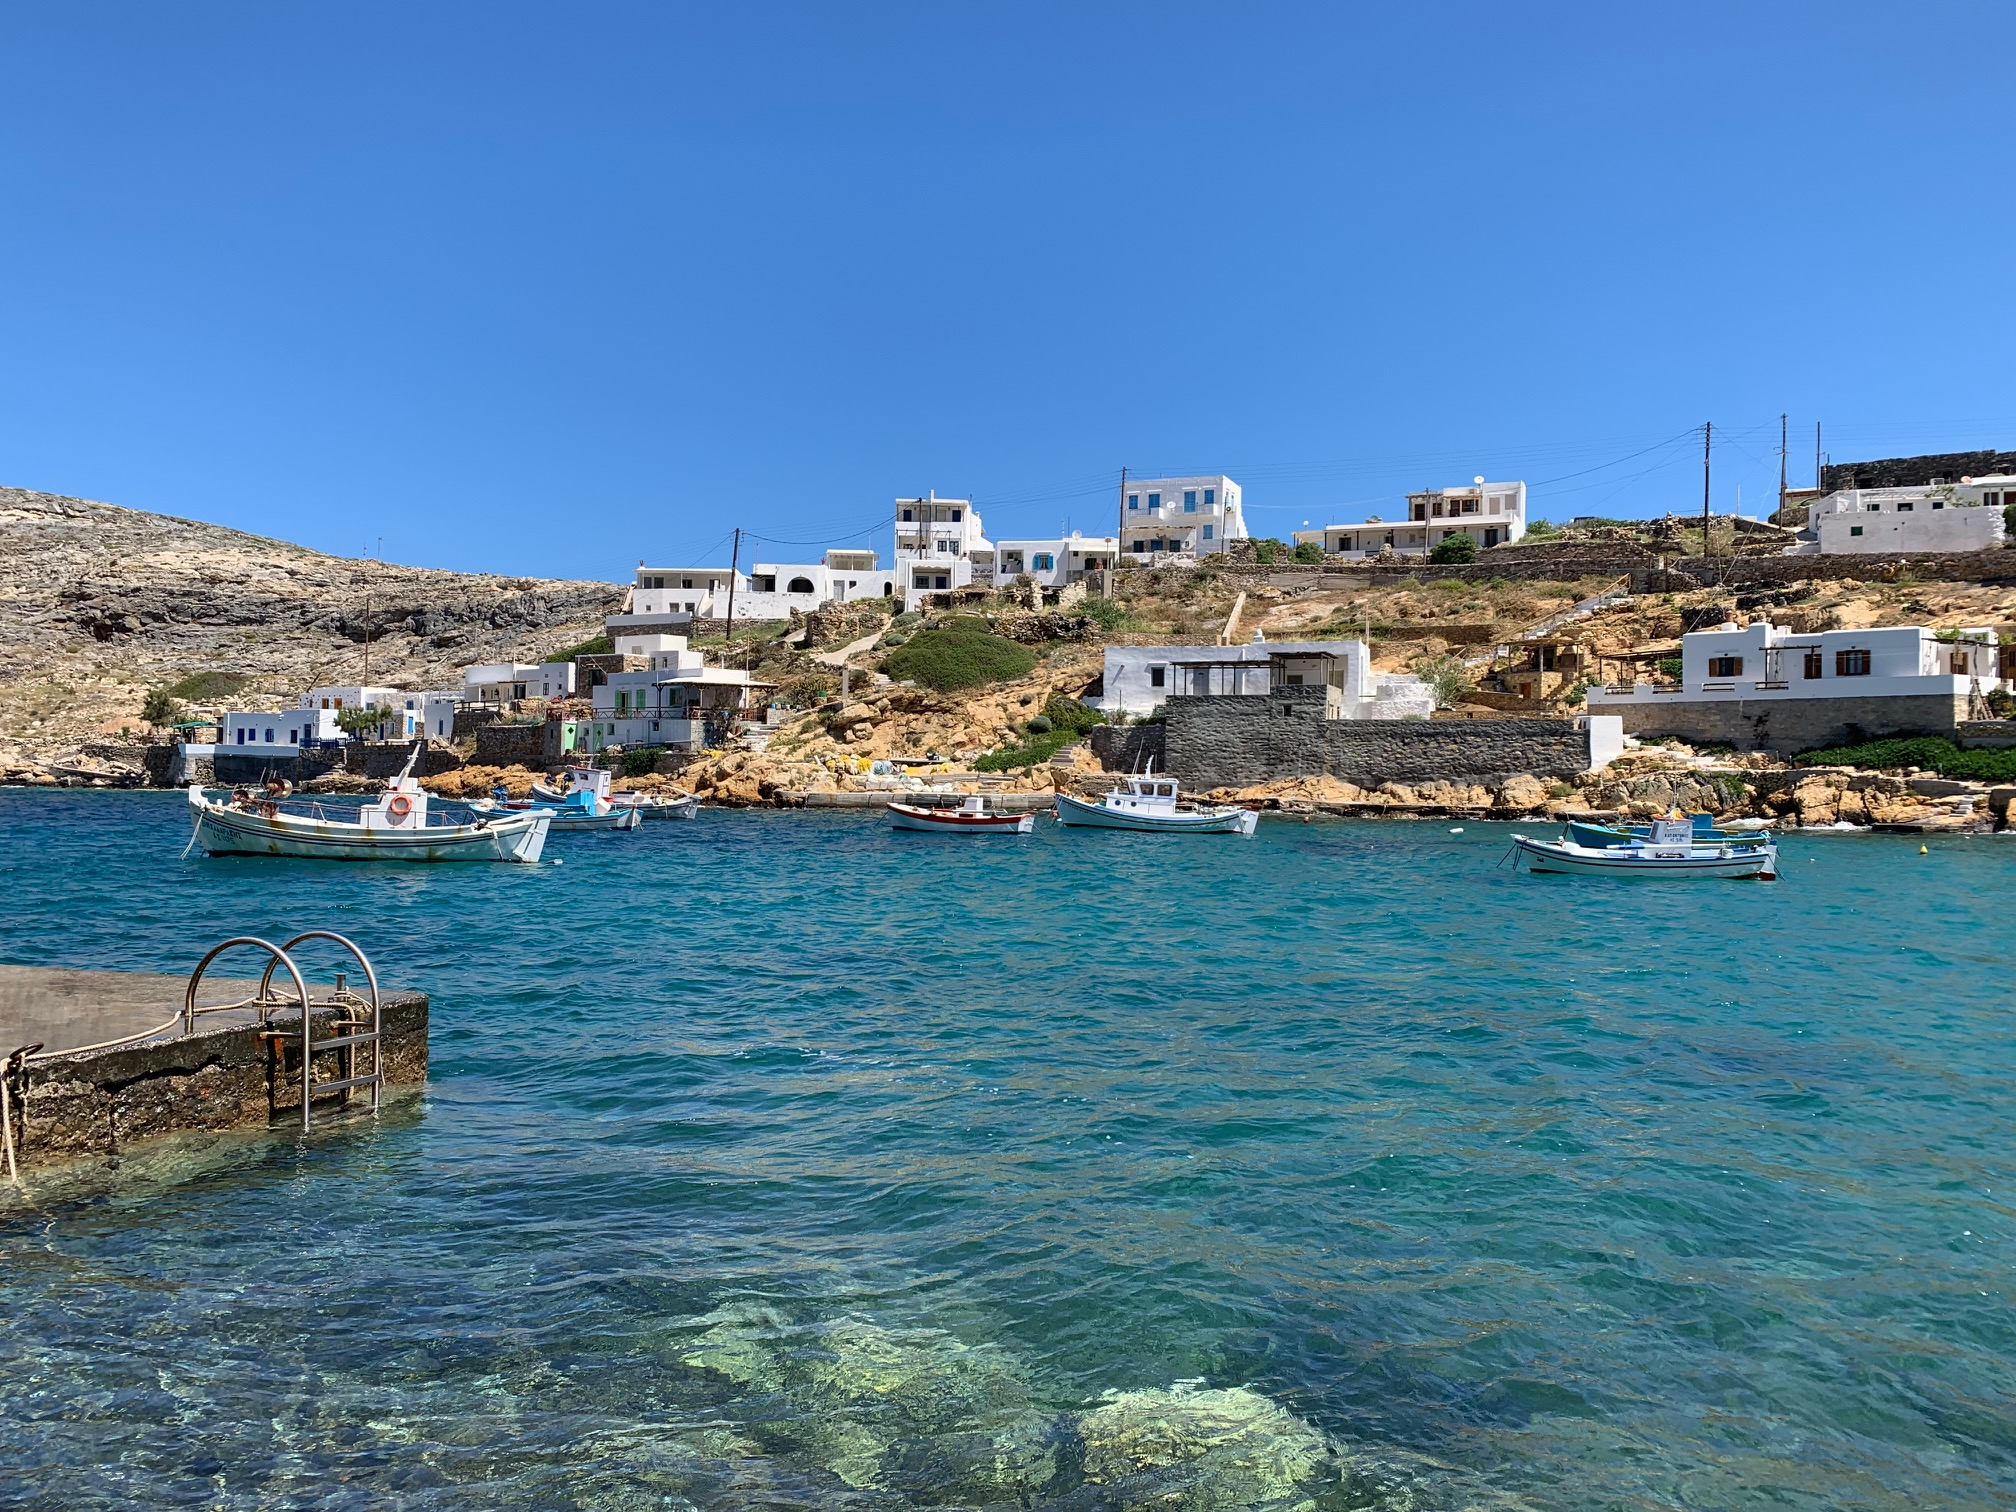 The day of 3 great meals in Sifnos, Greece